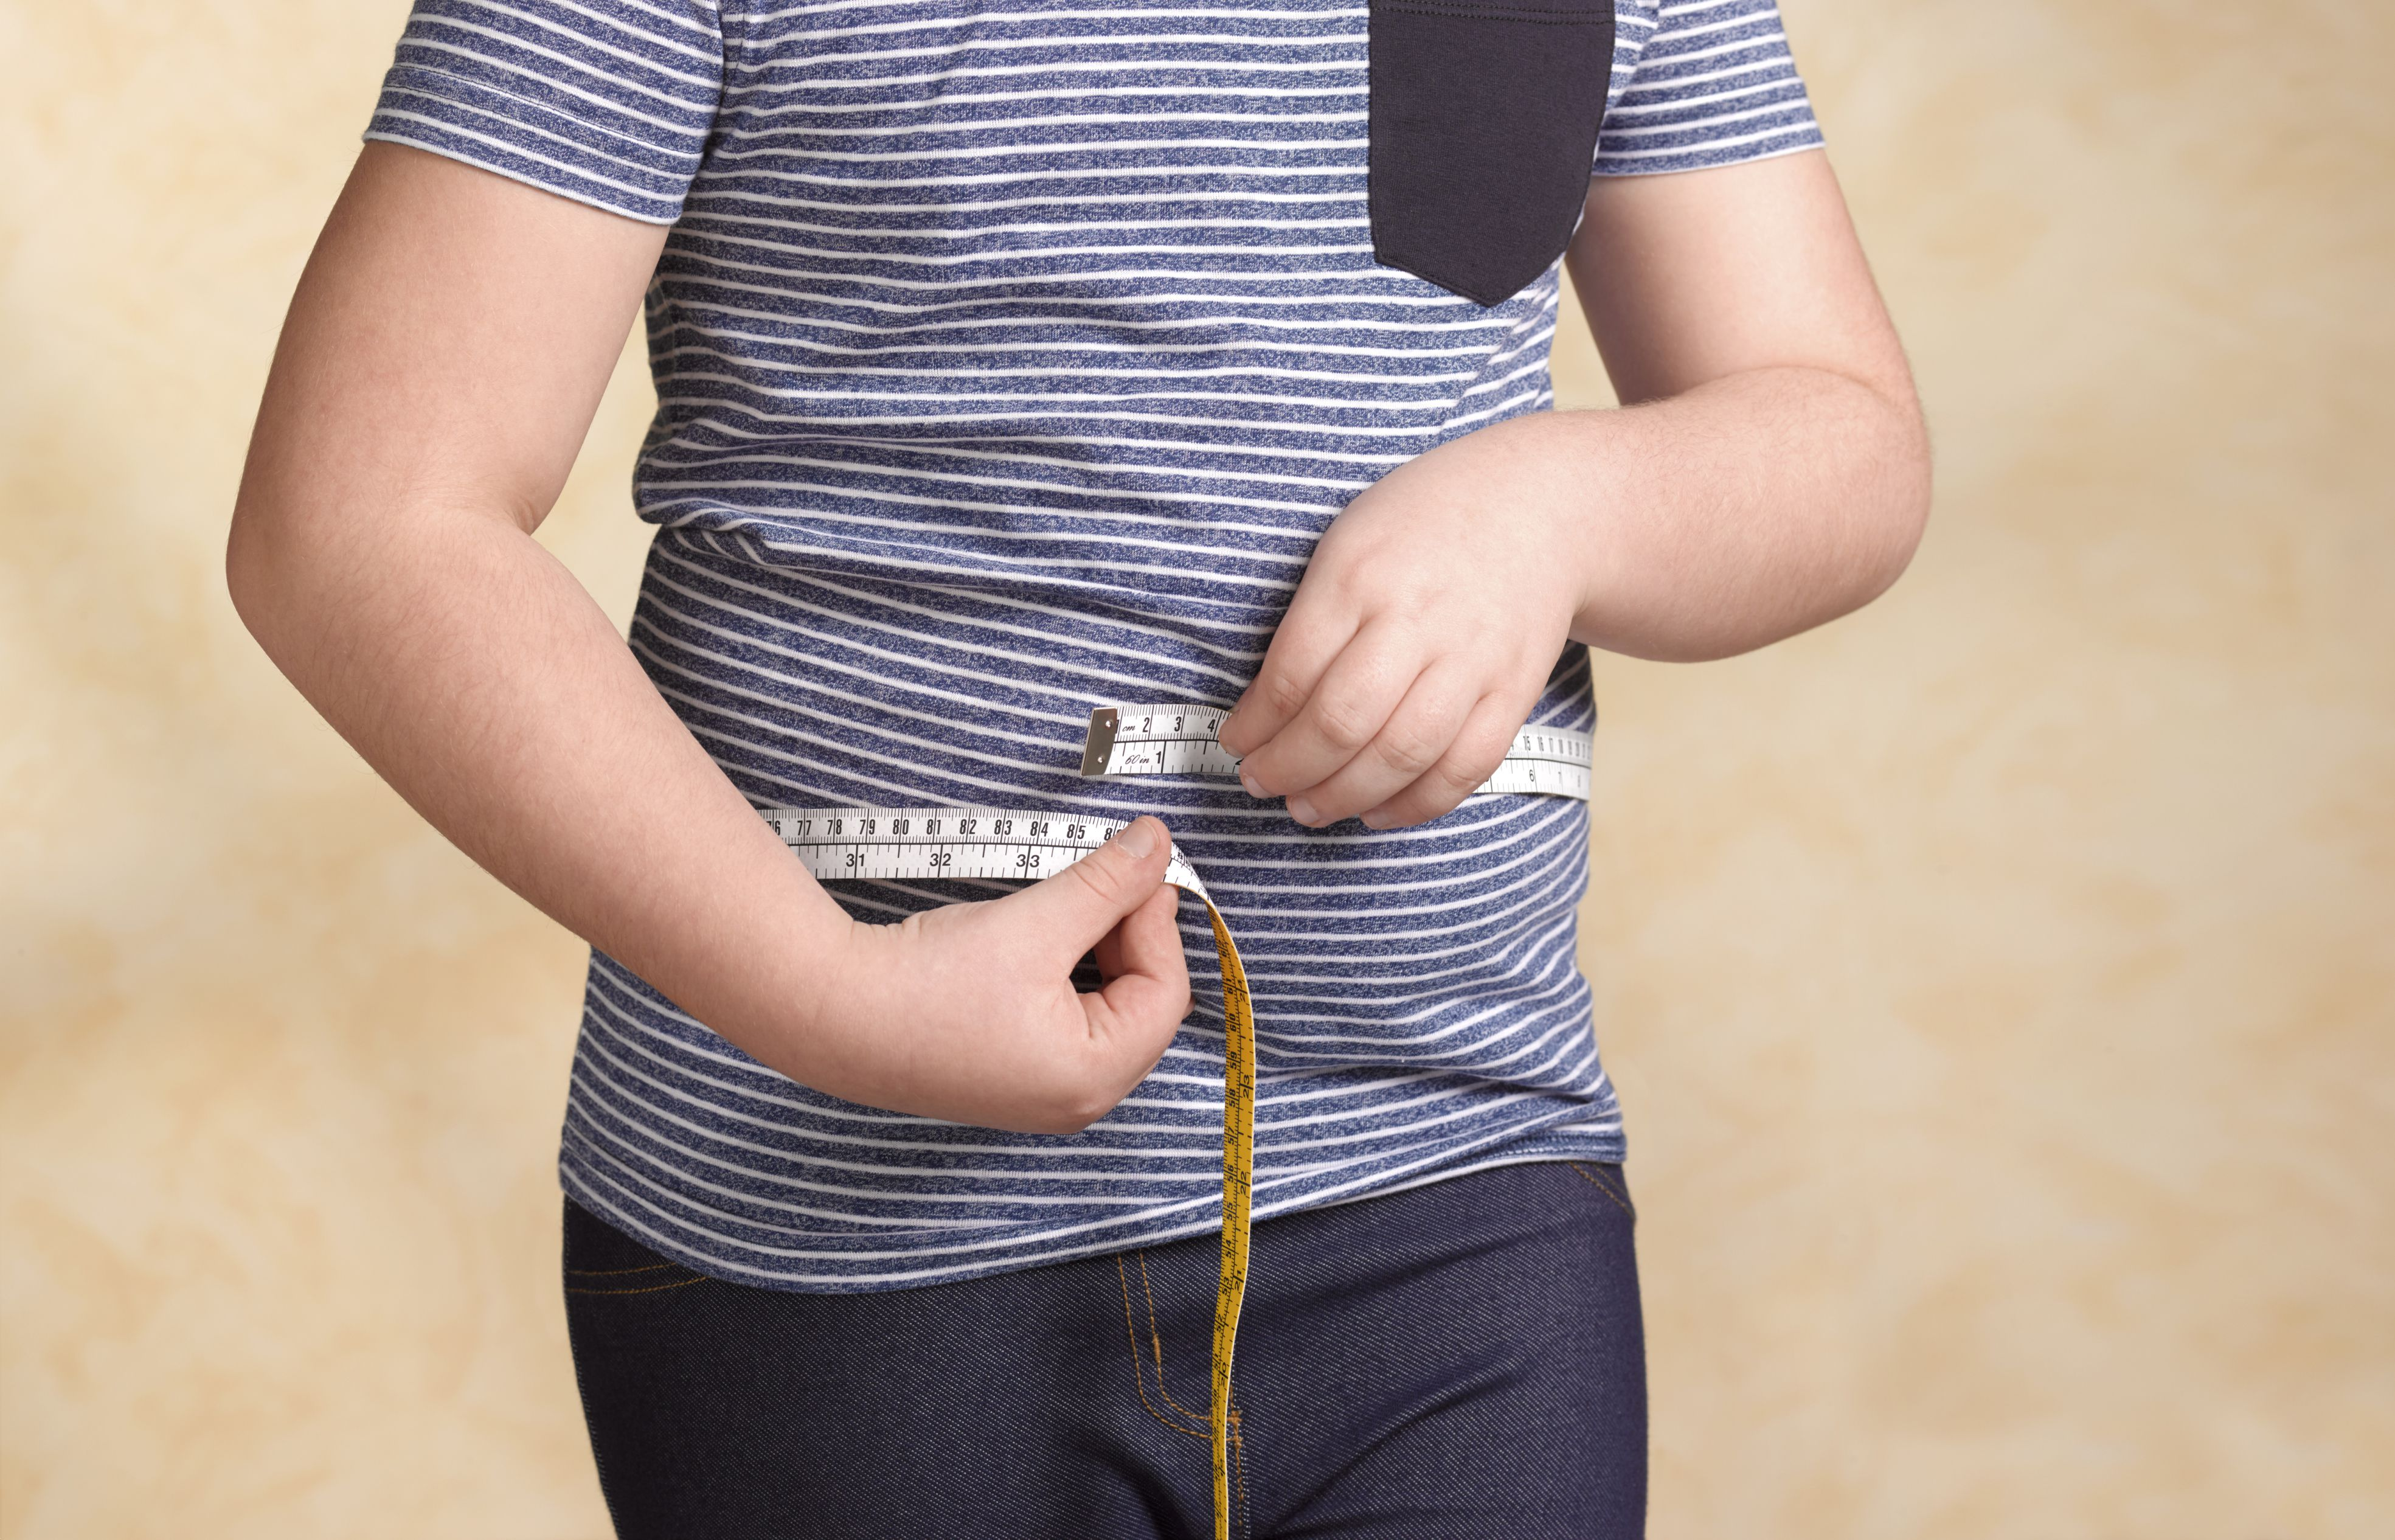 Here's How Obesity Can Affect Your Health And Quality Of Life